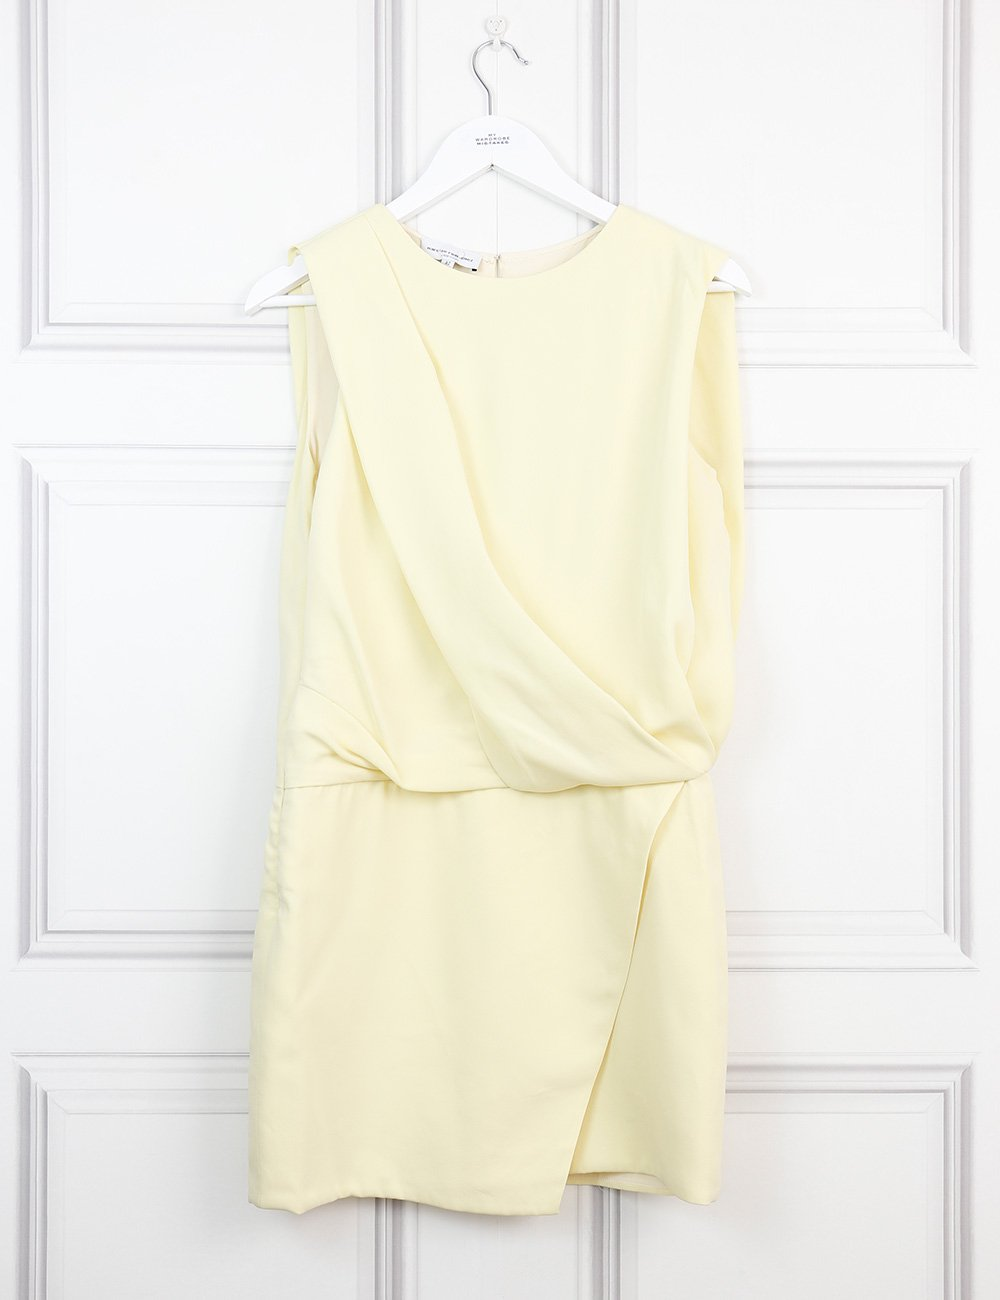 Narciso Rodriguez yellow sleeveless draped dress 10Uk- My Wardrobe Mistakes